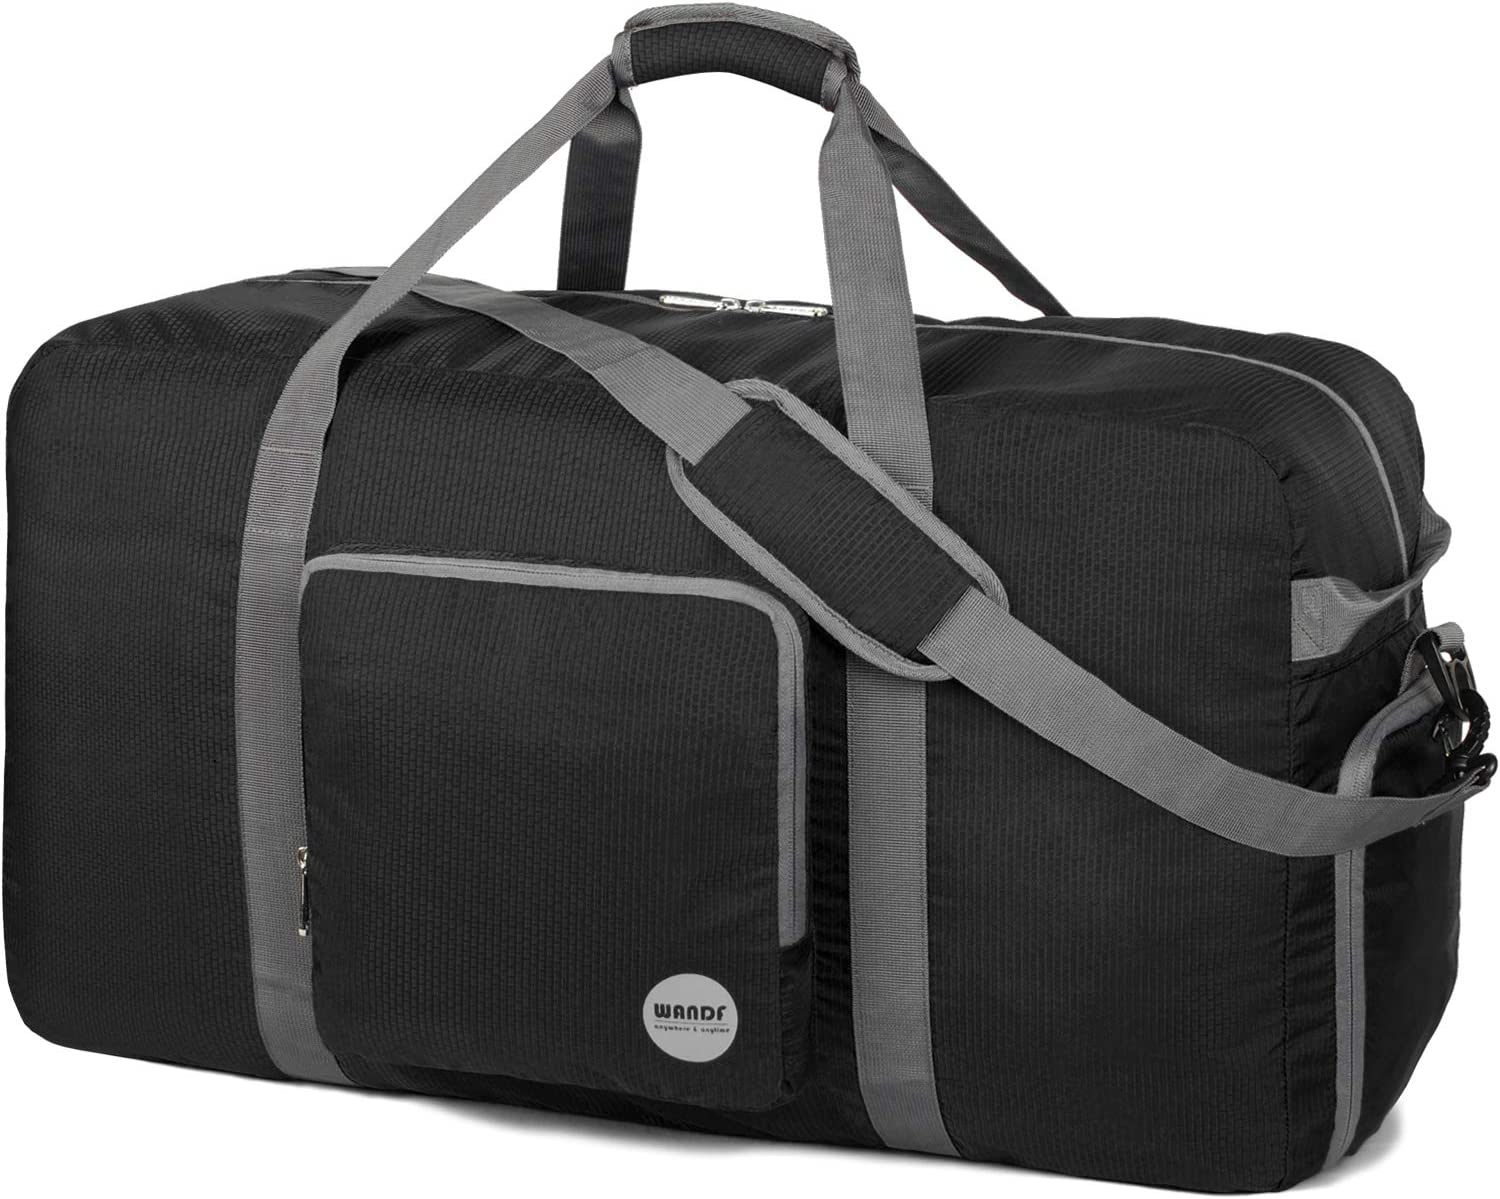 Foldable Duffle Bag 100L Super Lightweight Travel Duffel for Luggage Sports Gym Water Resistant Nylon by WANDF